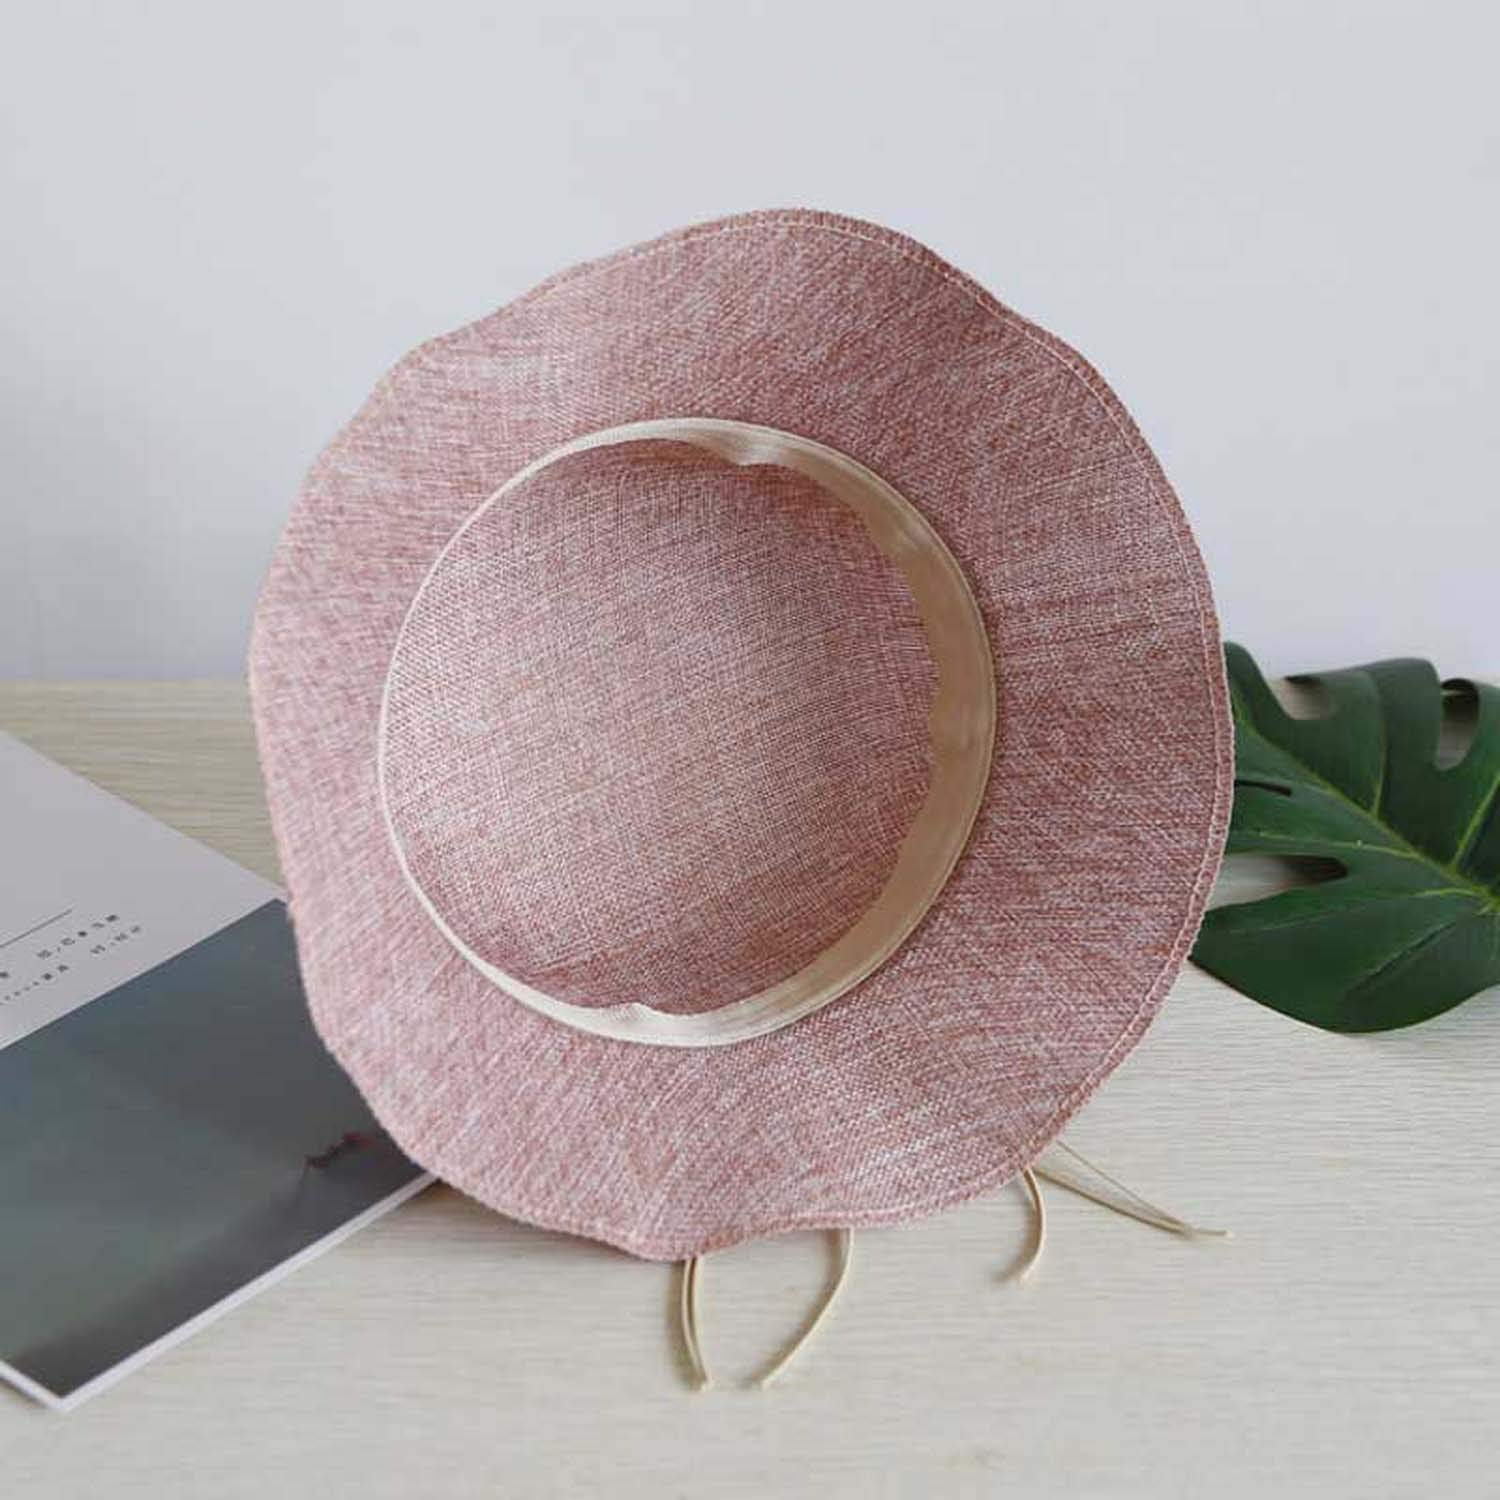 Summer Straw Sun Hats Beach Cap Casual Ladies Sun Protection Outdoor Floral Sunhat,Hot Pink